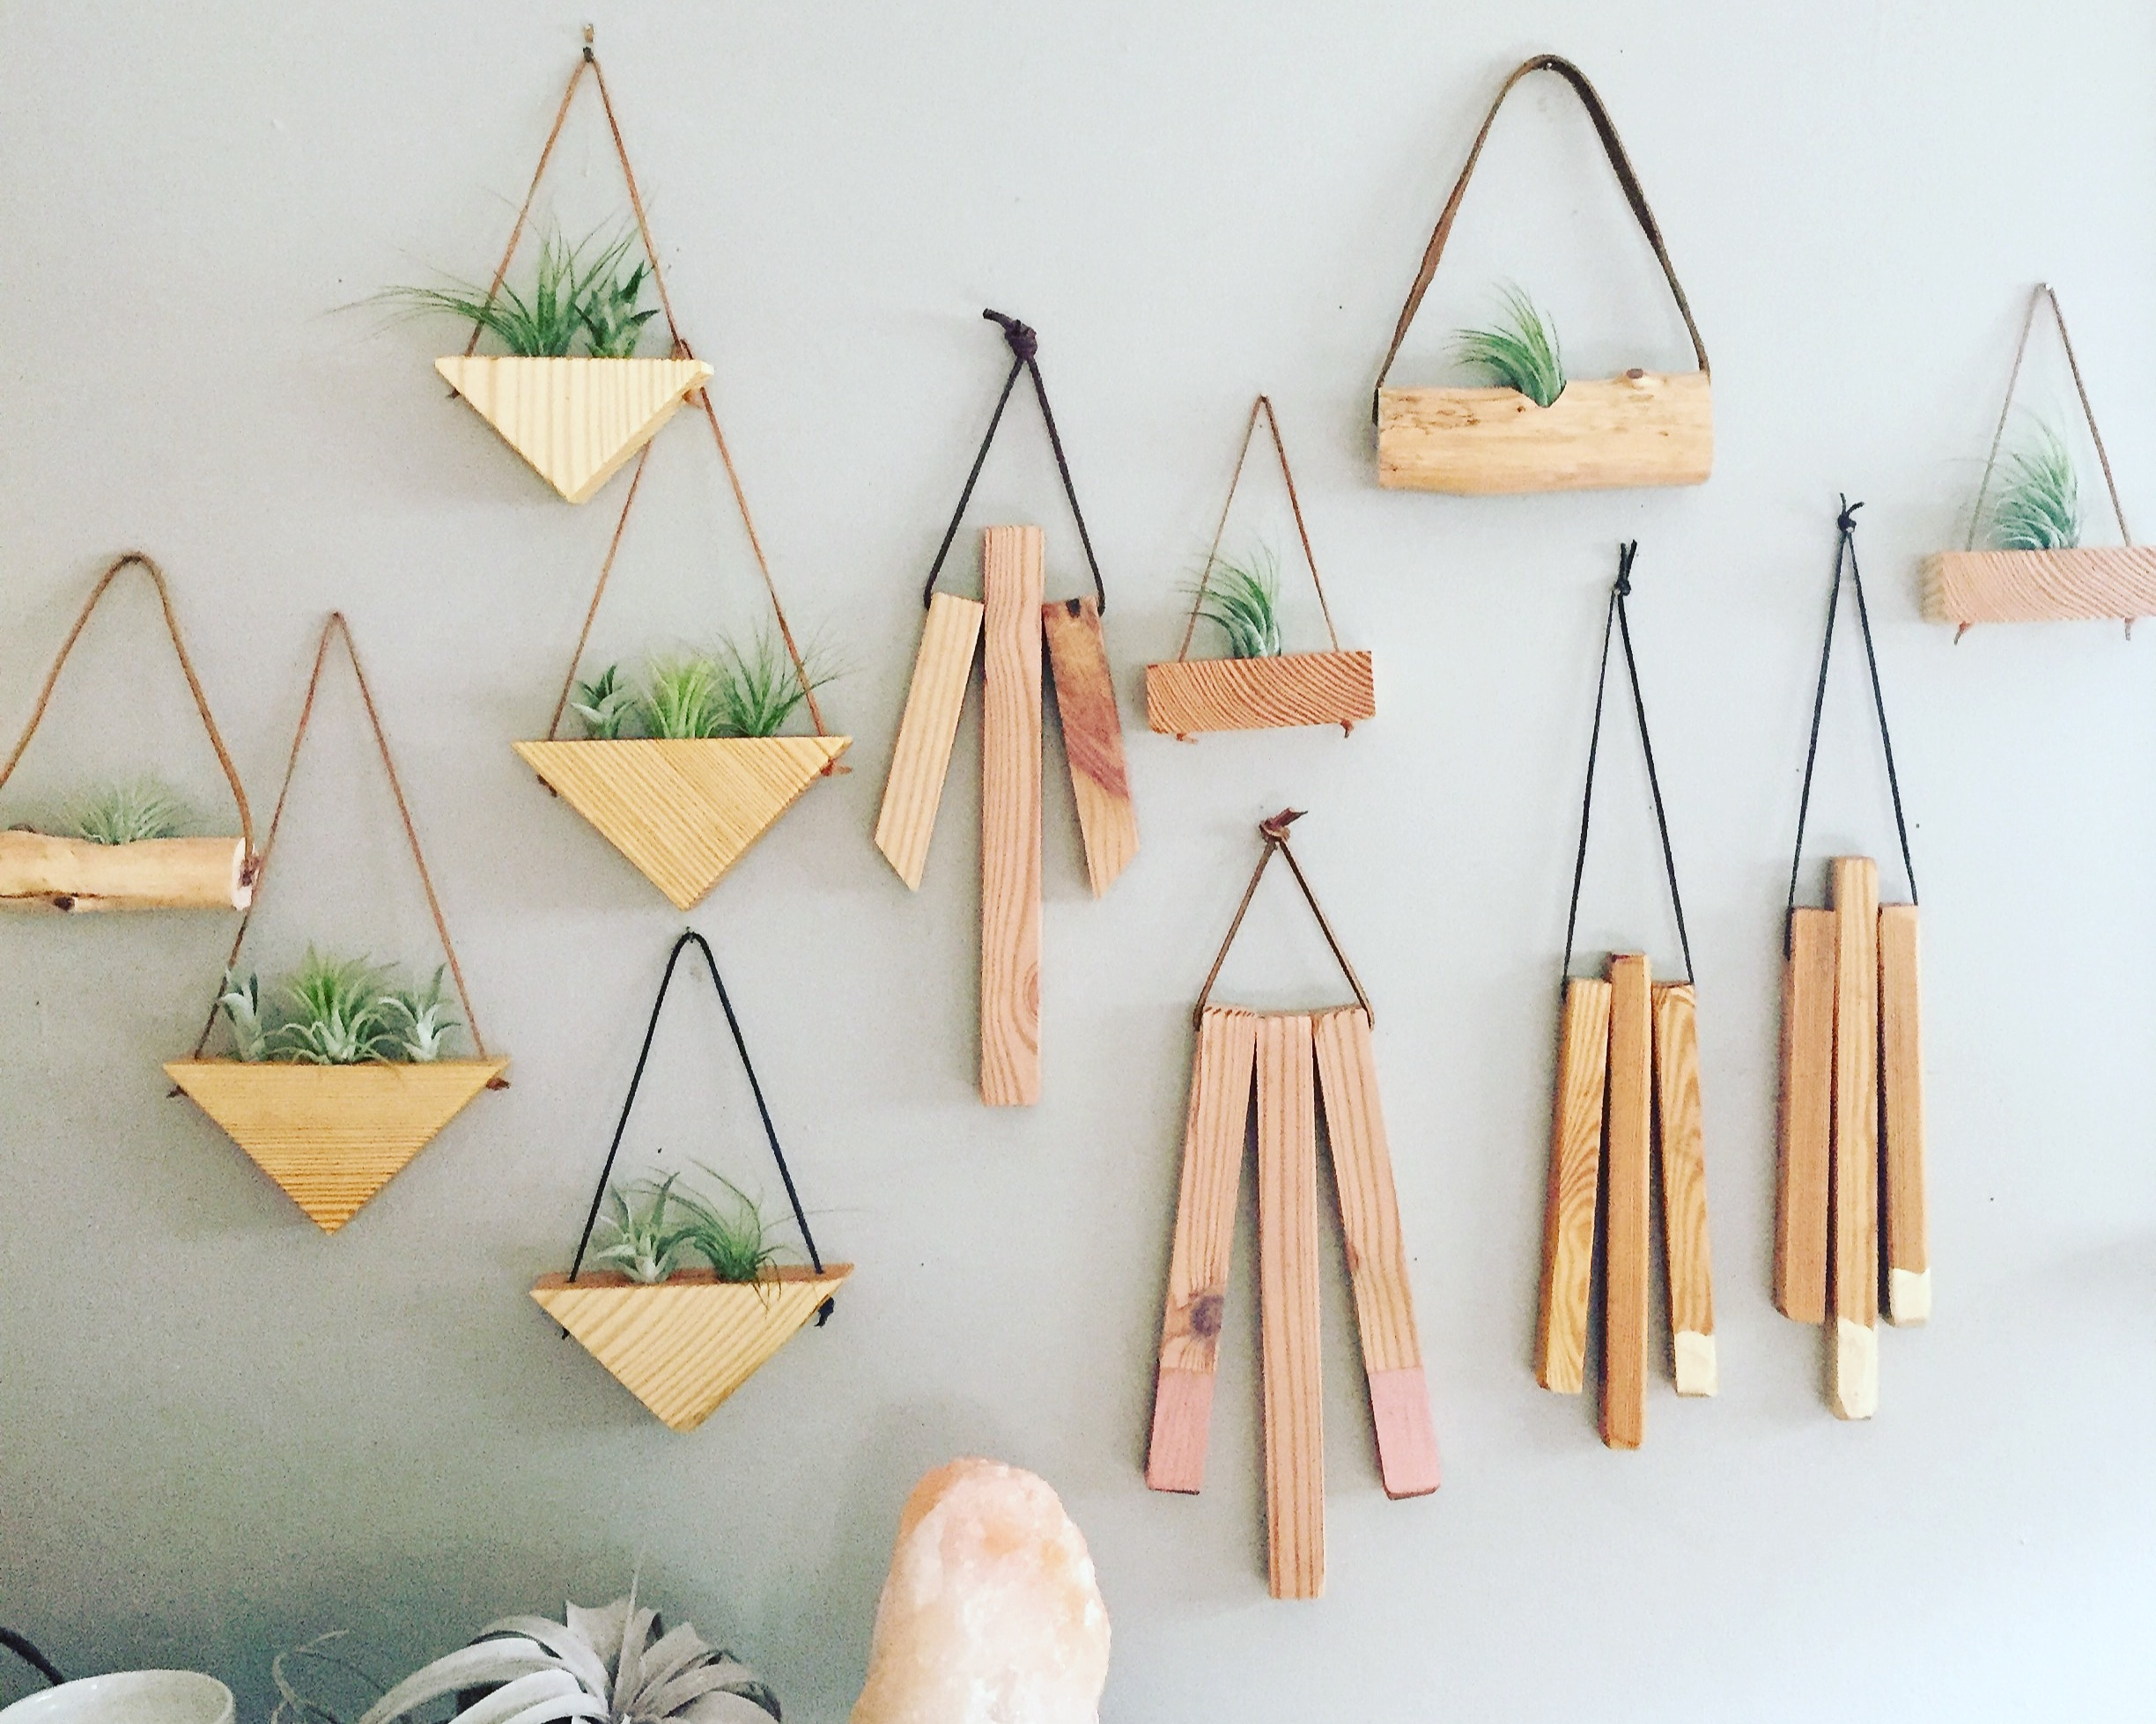 Natural wood decor and air plants